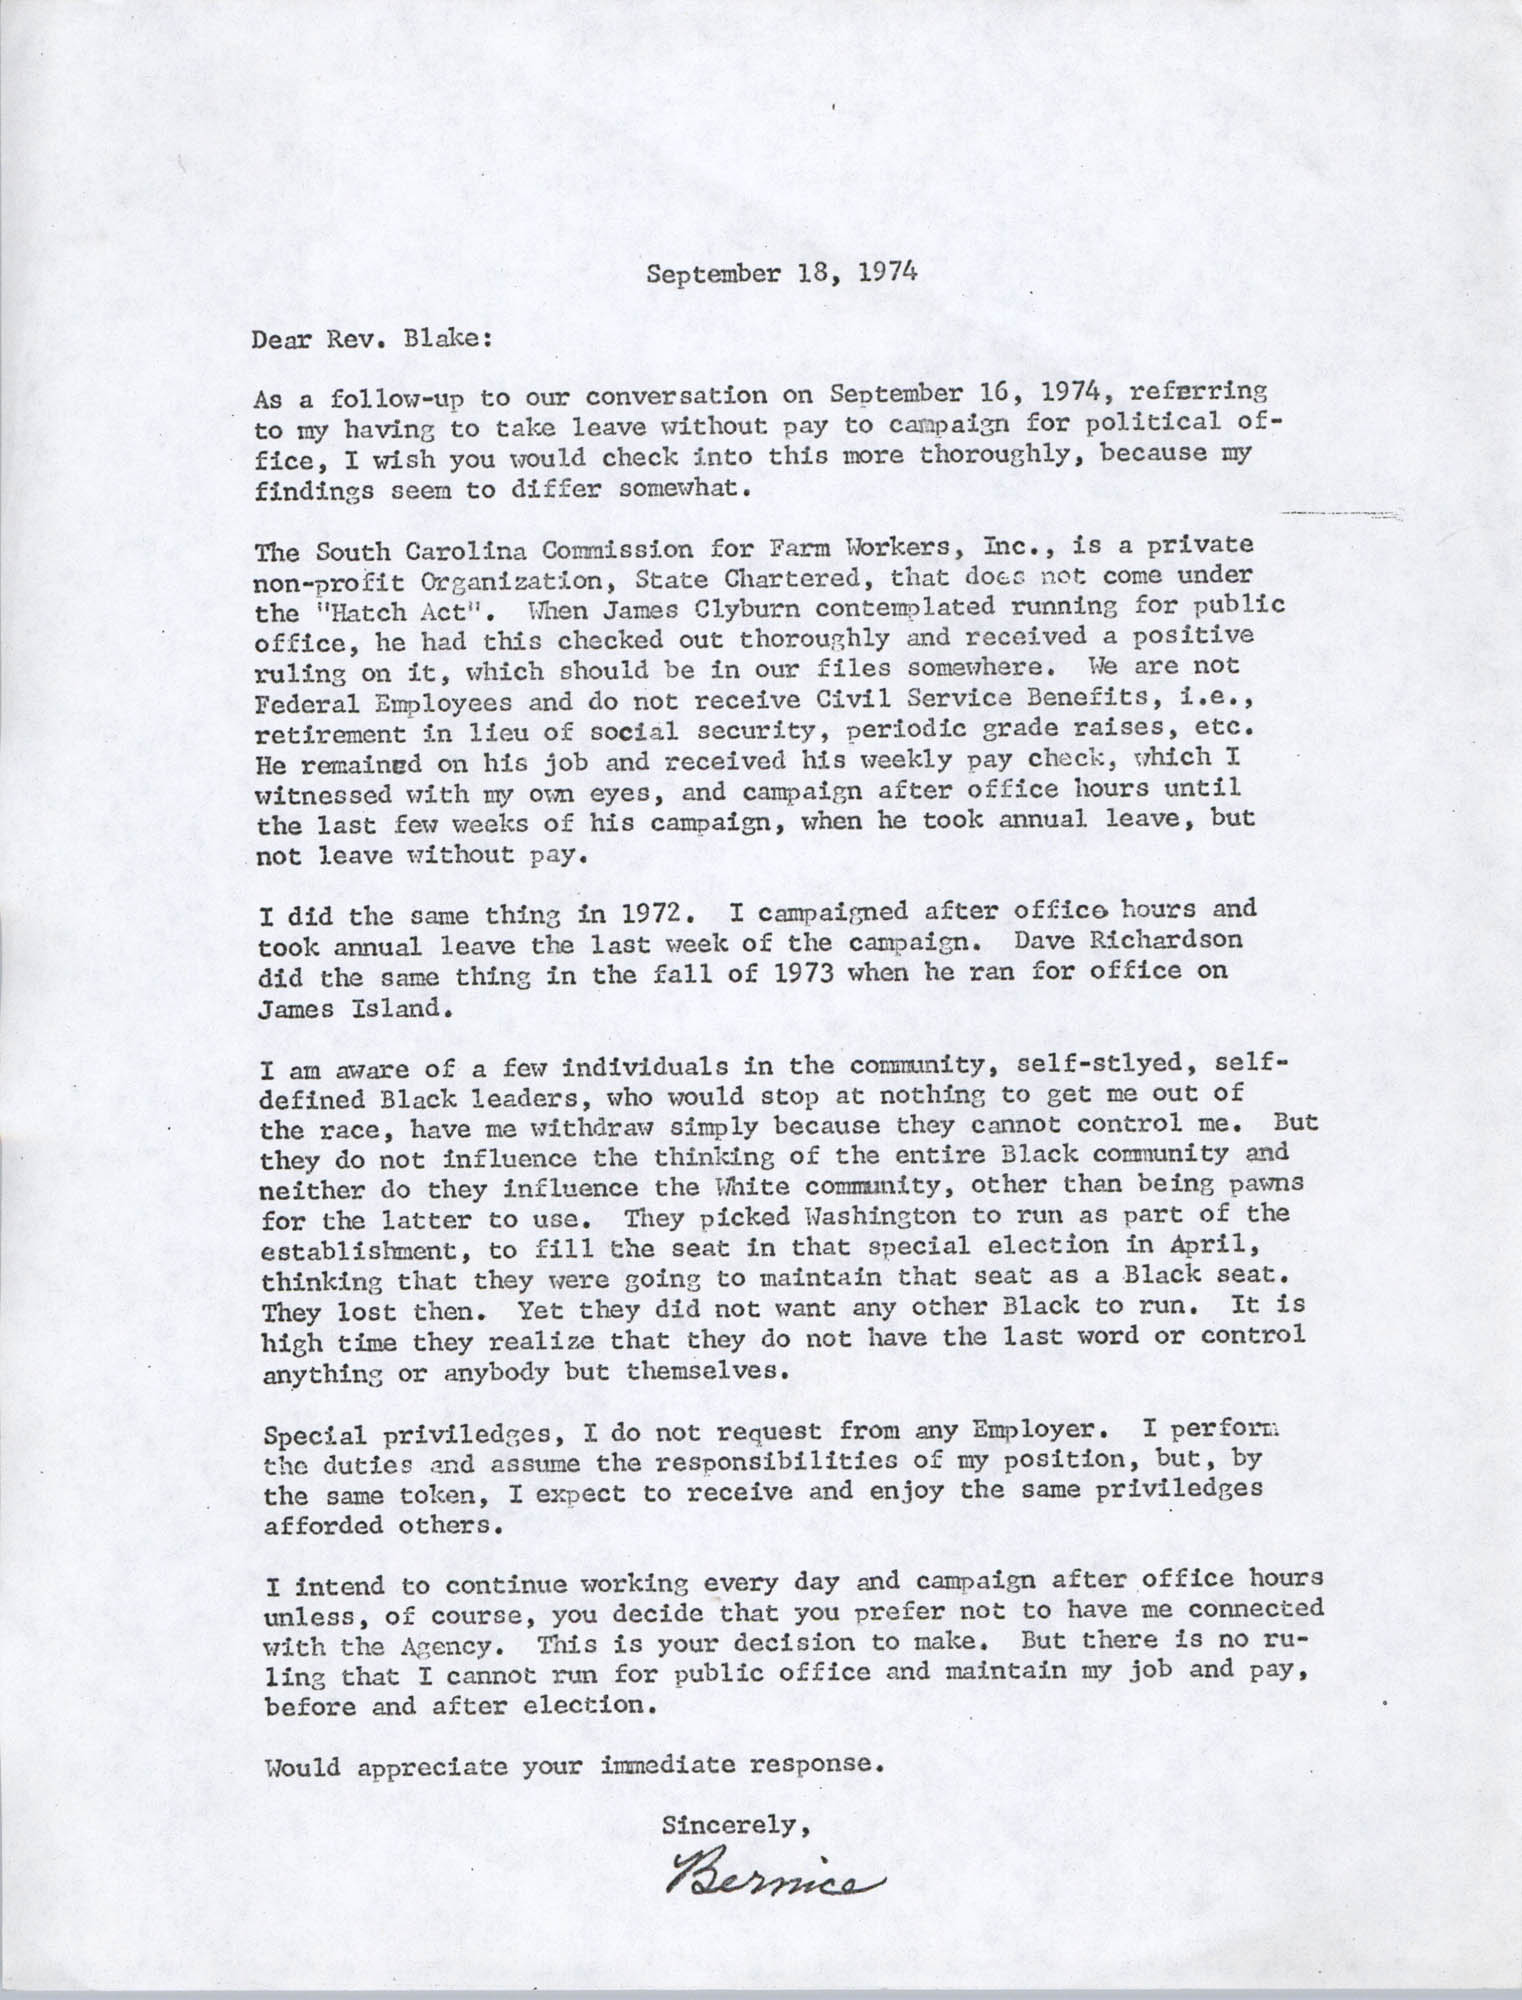 Letter from Bernice Robinson to Reverend Blake, September 18, 1974